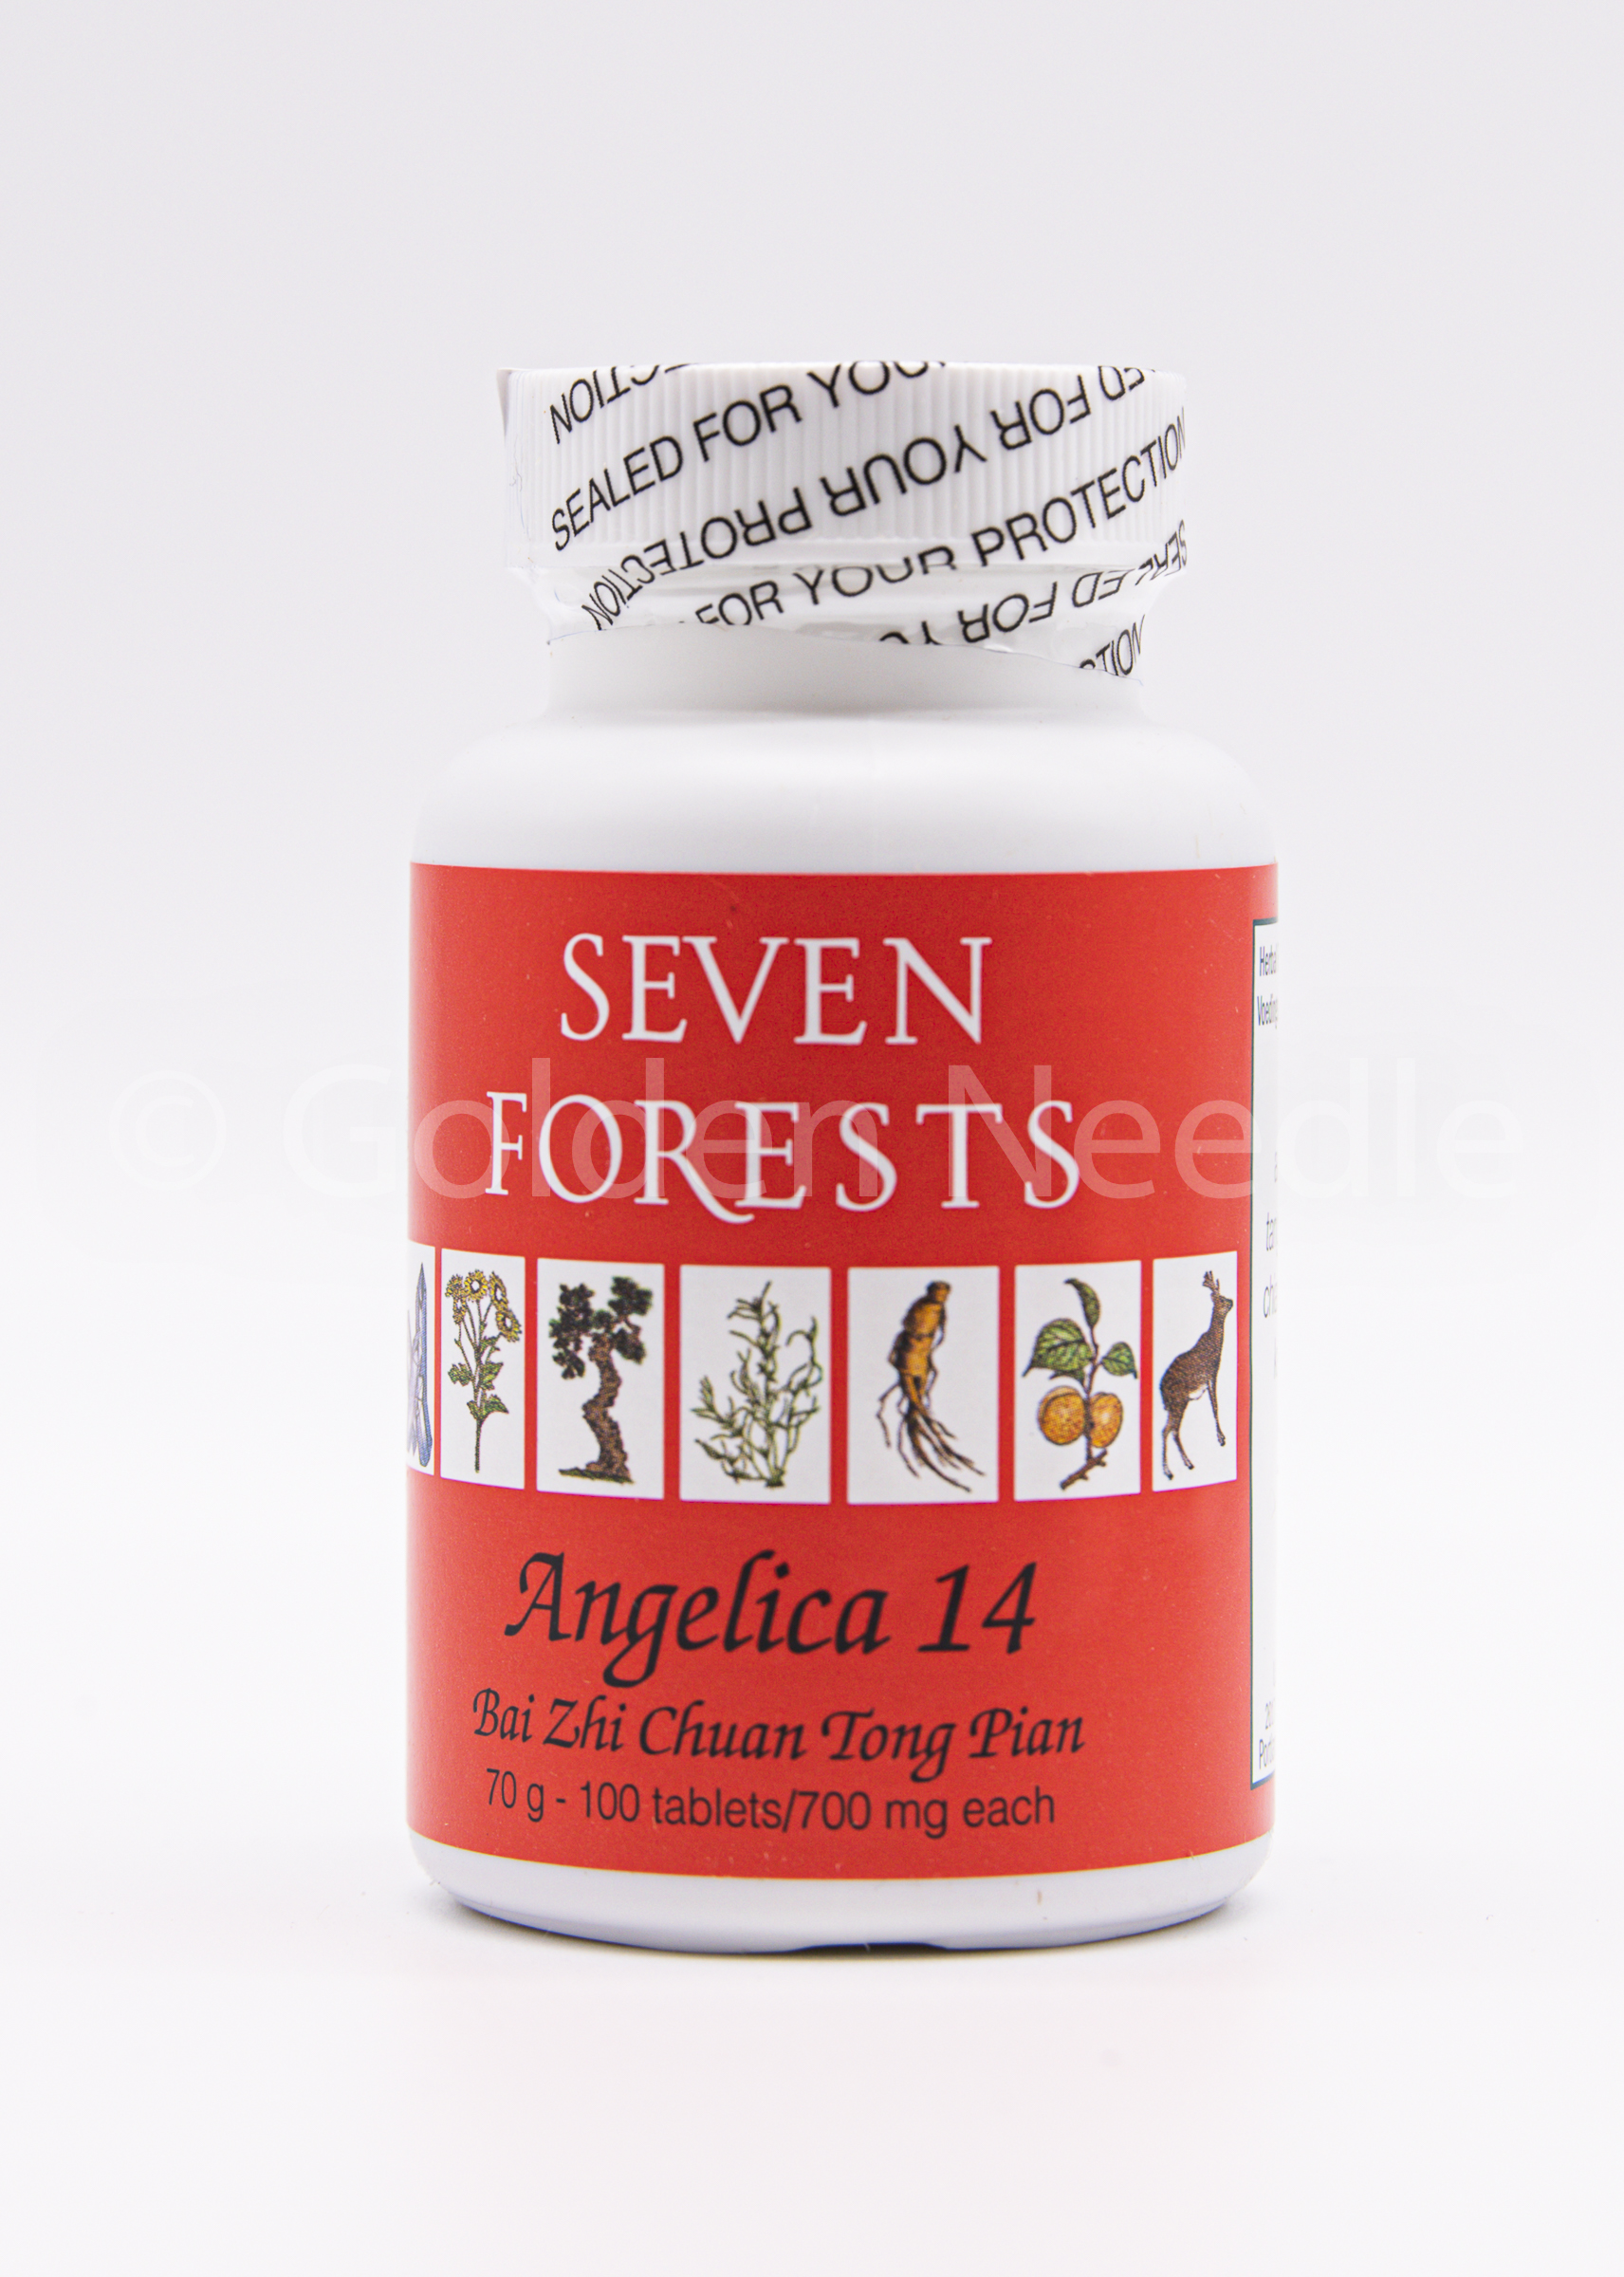 Angelica 14, 100 tablets